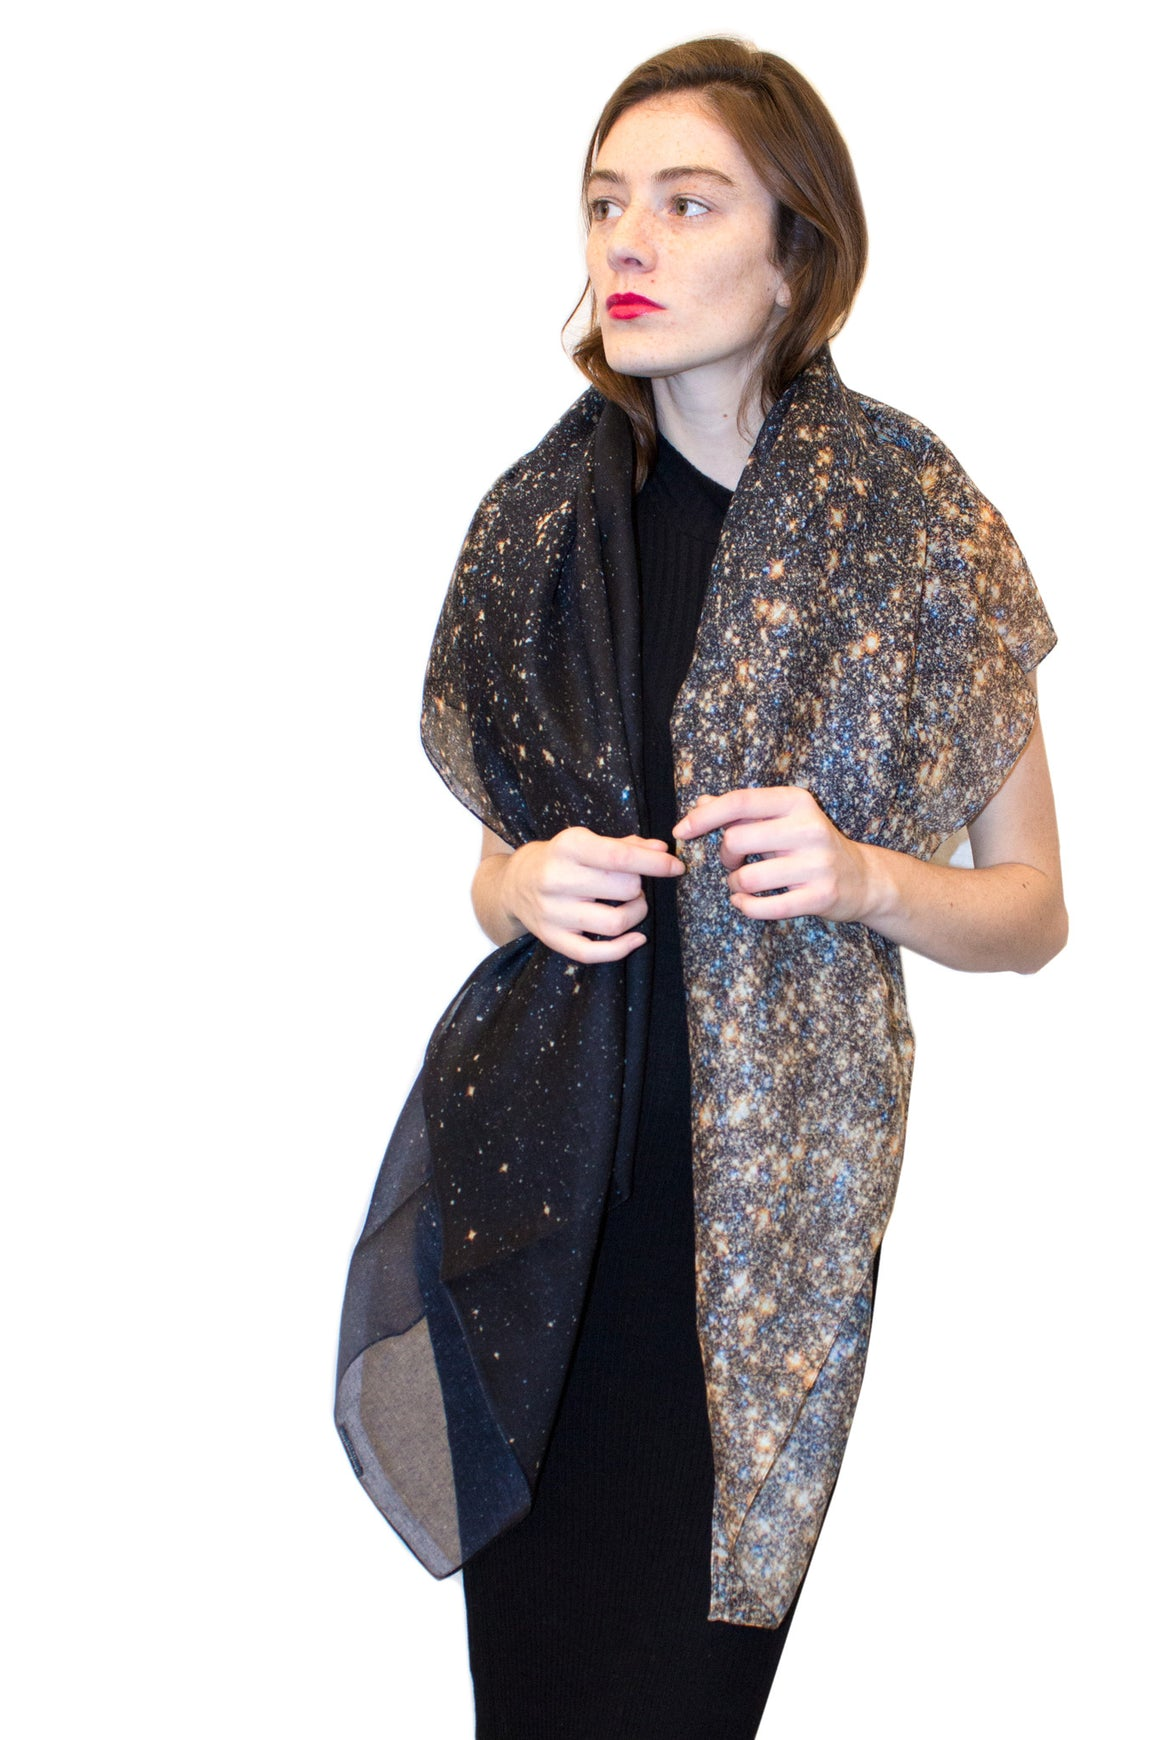 Stardust Gold Galaxy Scarf, Shadowplay New York